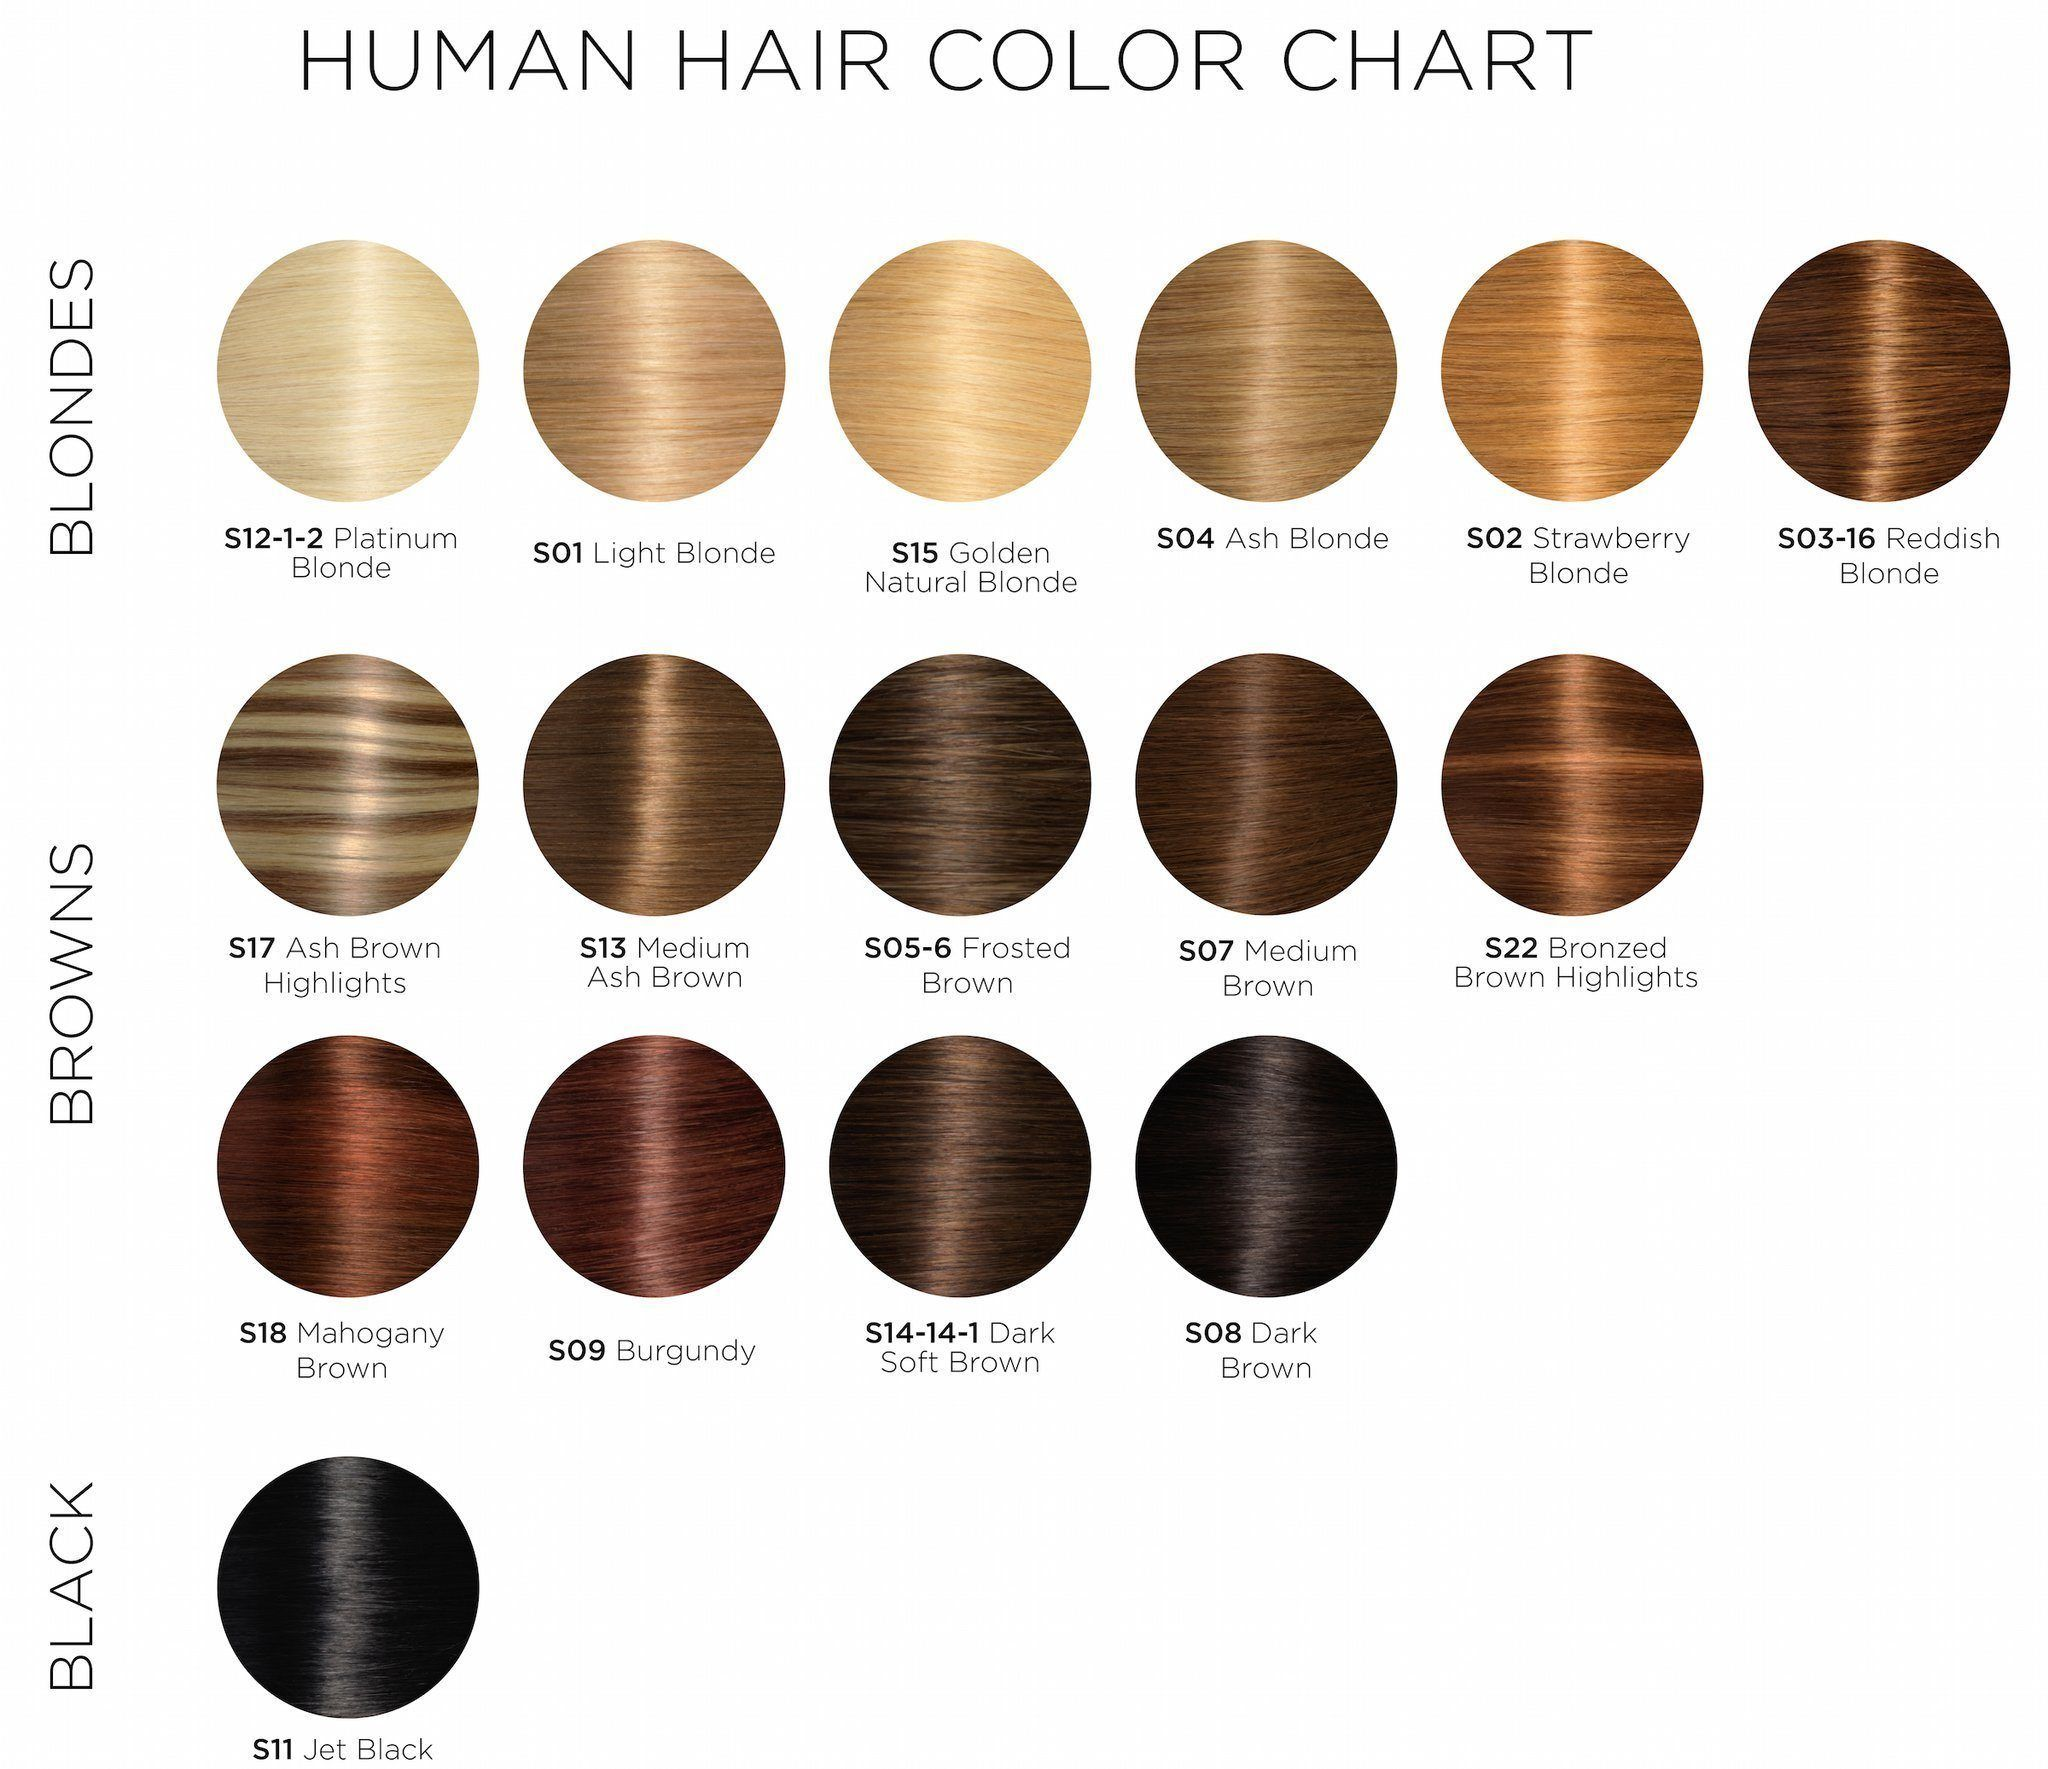 Pin By Mendezsugeily On Hair In 2021 Hair Color Chart Glamour Hair Hair Color